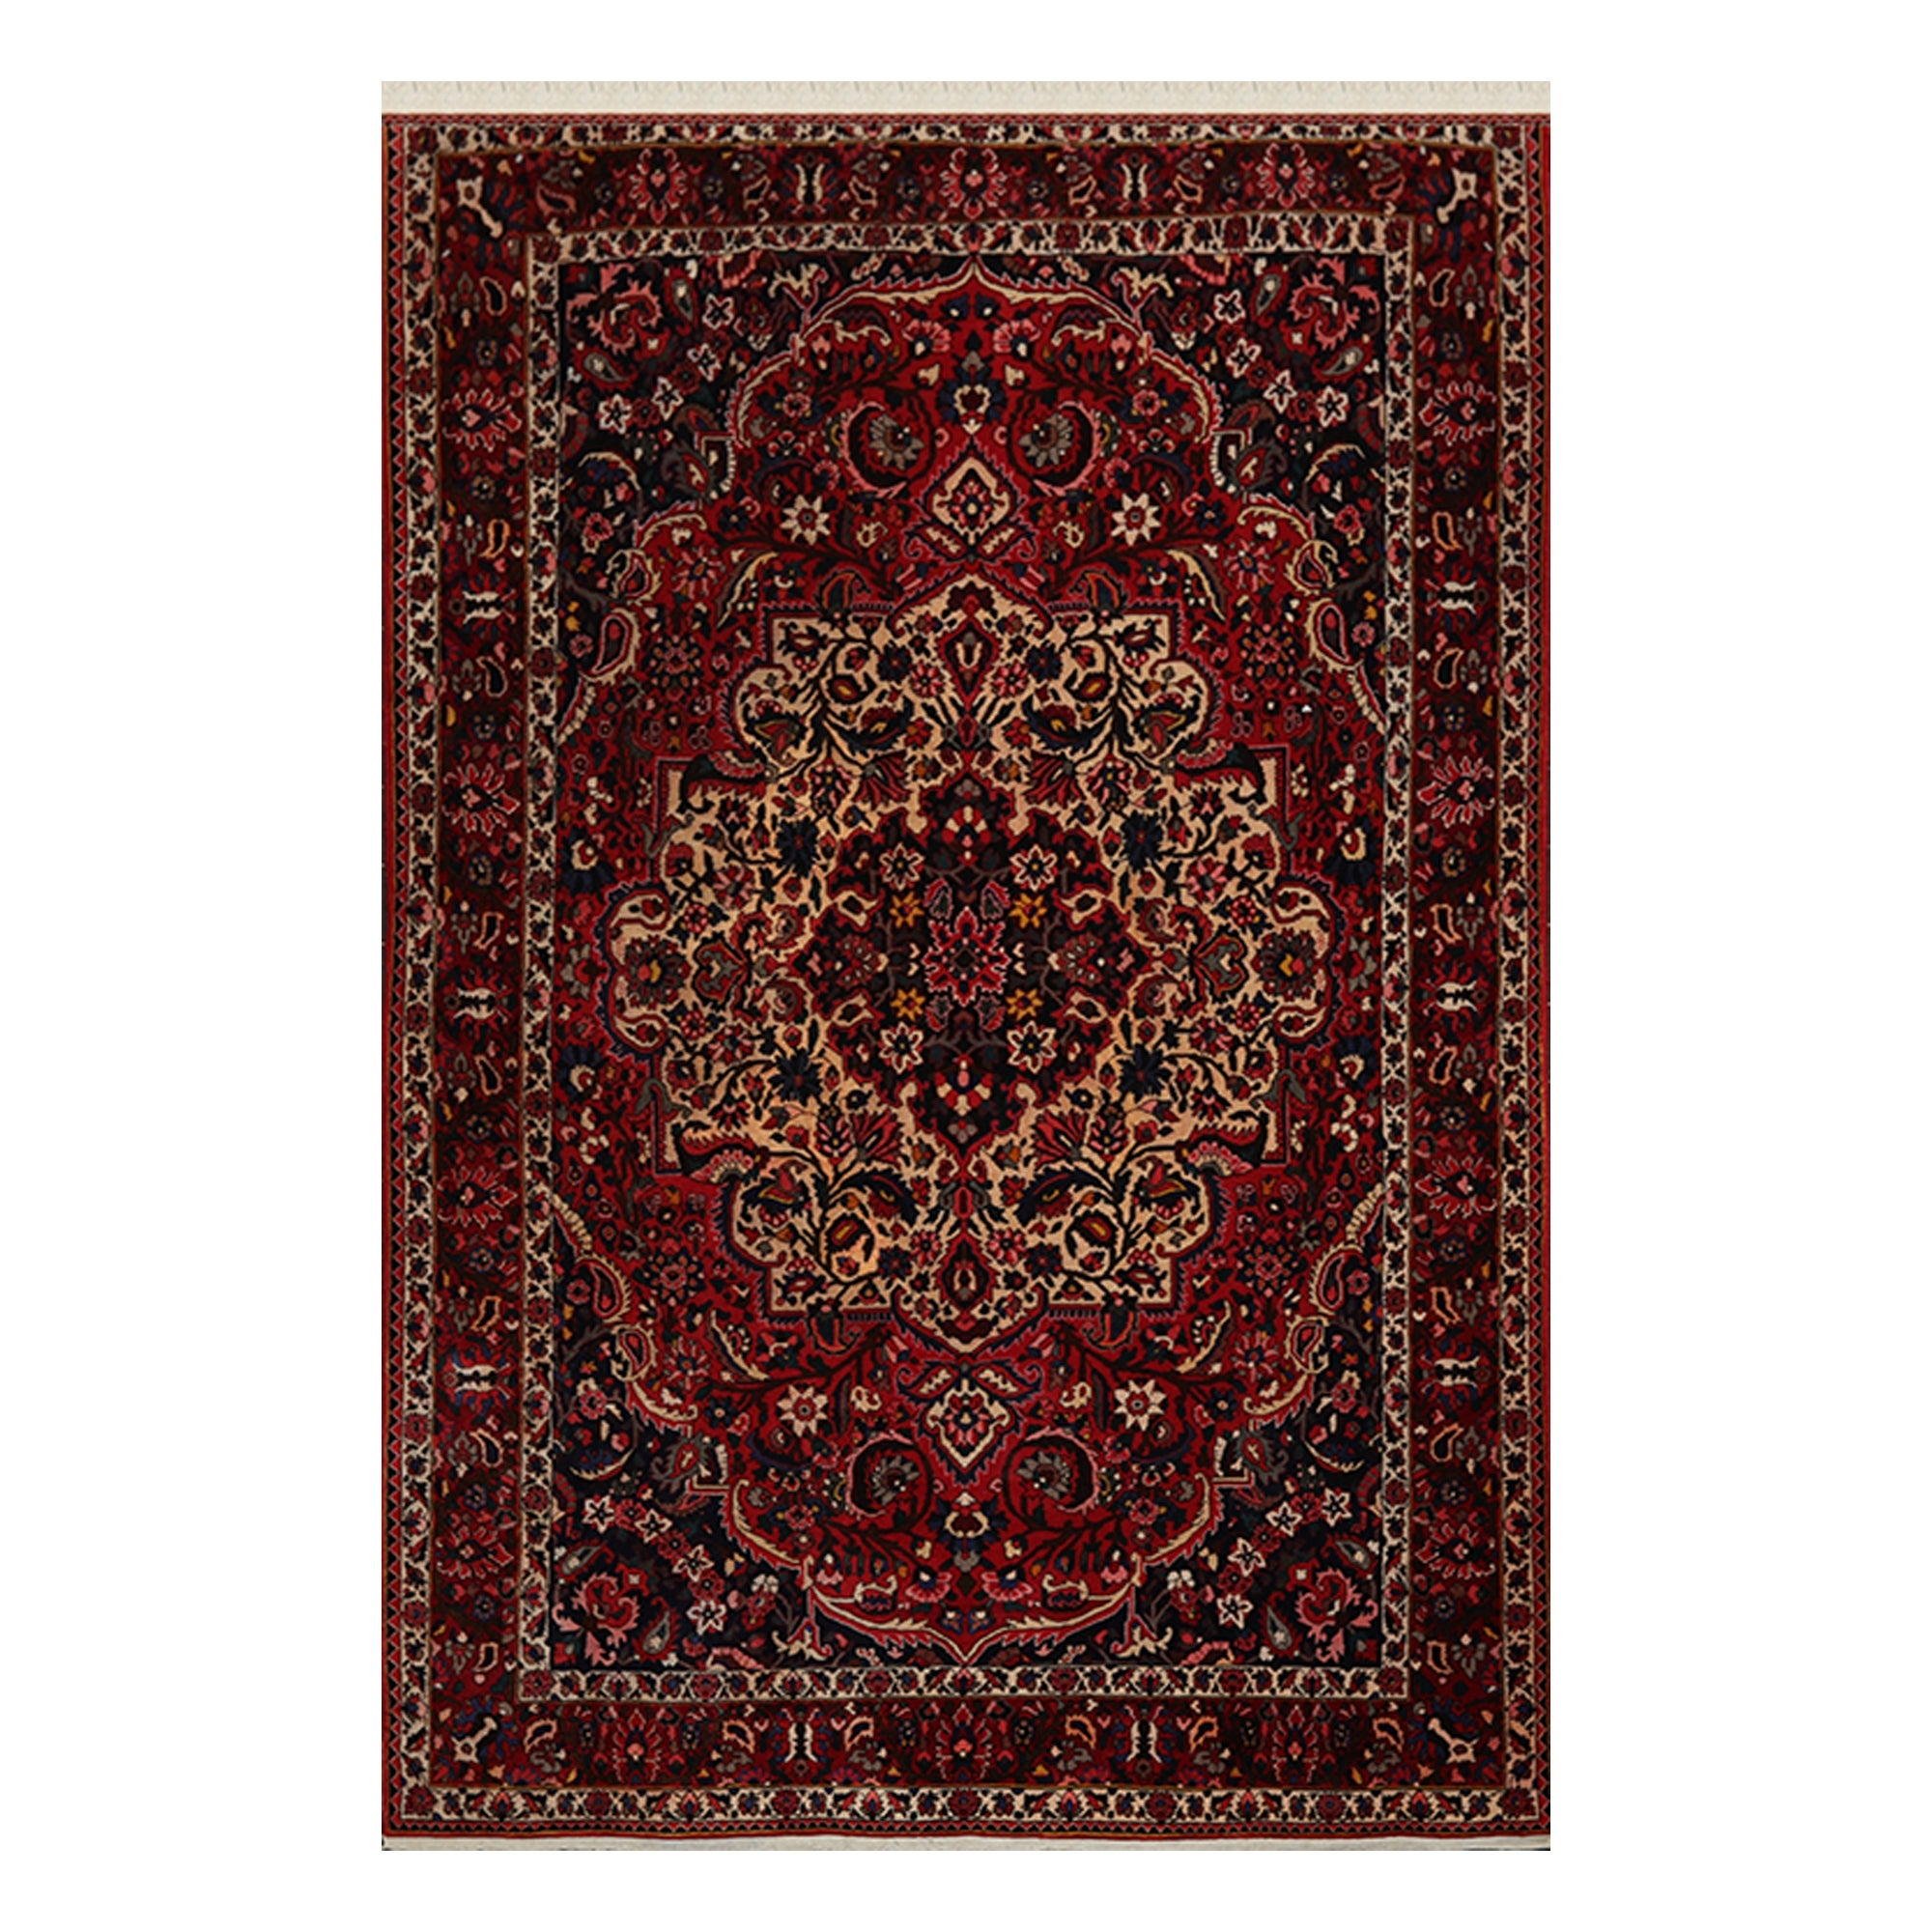 Bhakhtiari Hand Knotted Red Beige Wool Persian Oriental Area Rug 8x10 07 00 X 10 06 Overstock 31030265